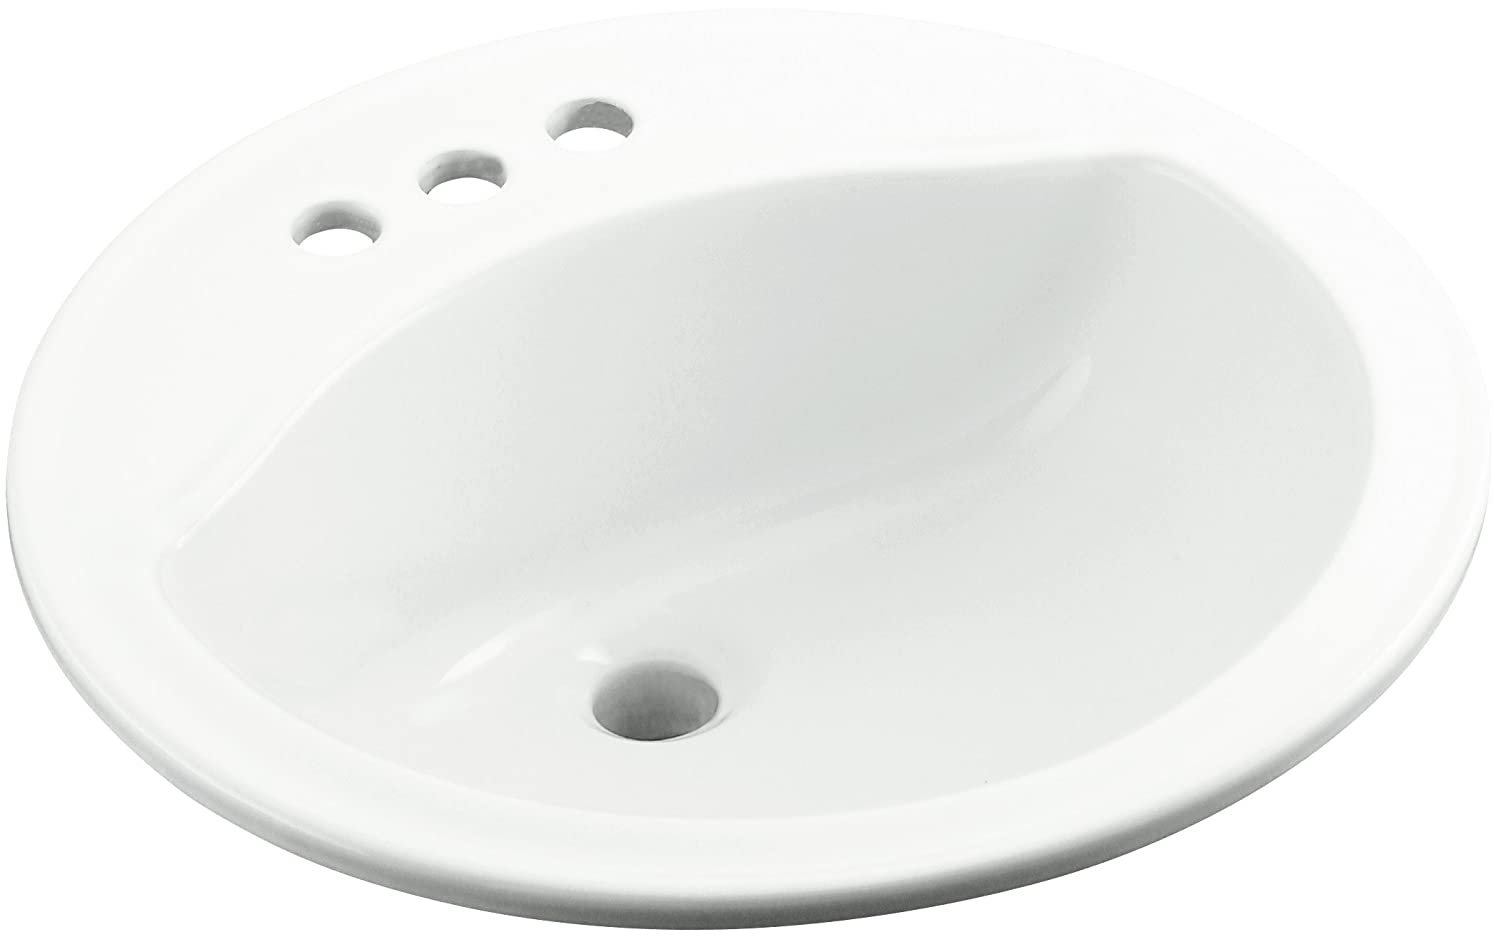 Charmant Sterling 441904 0 Modesto 19 Inch By 19 Inch By 8 Inch Round Lavatory,  White   Vessel Sinks   Amazon.com